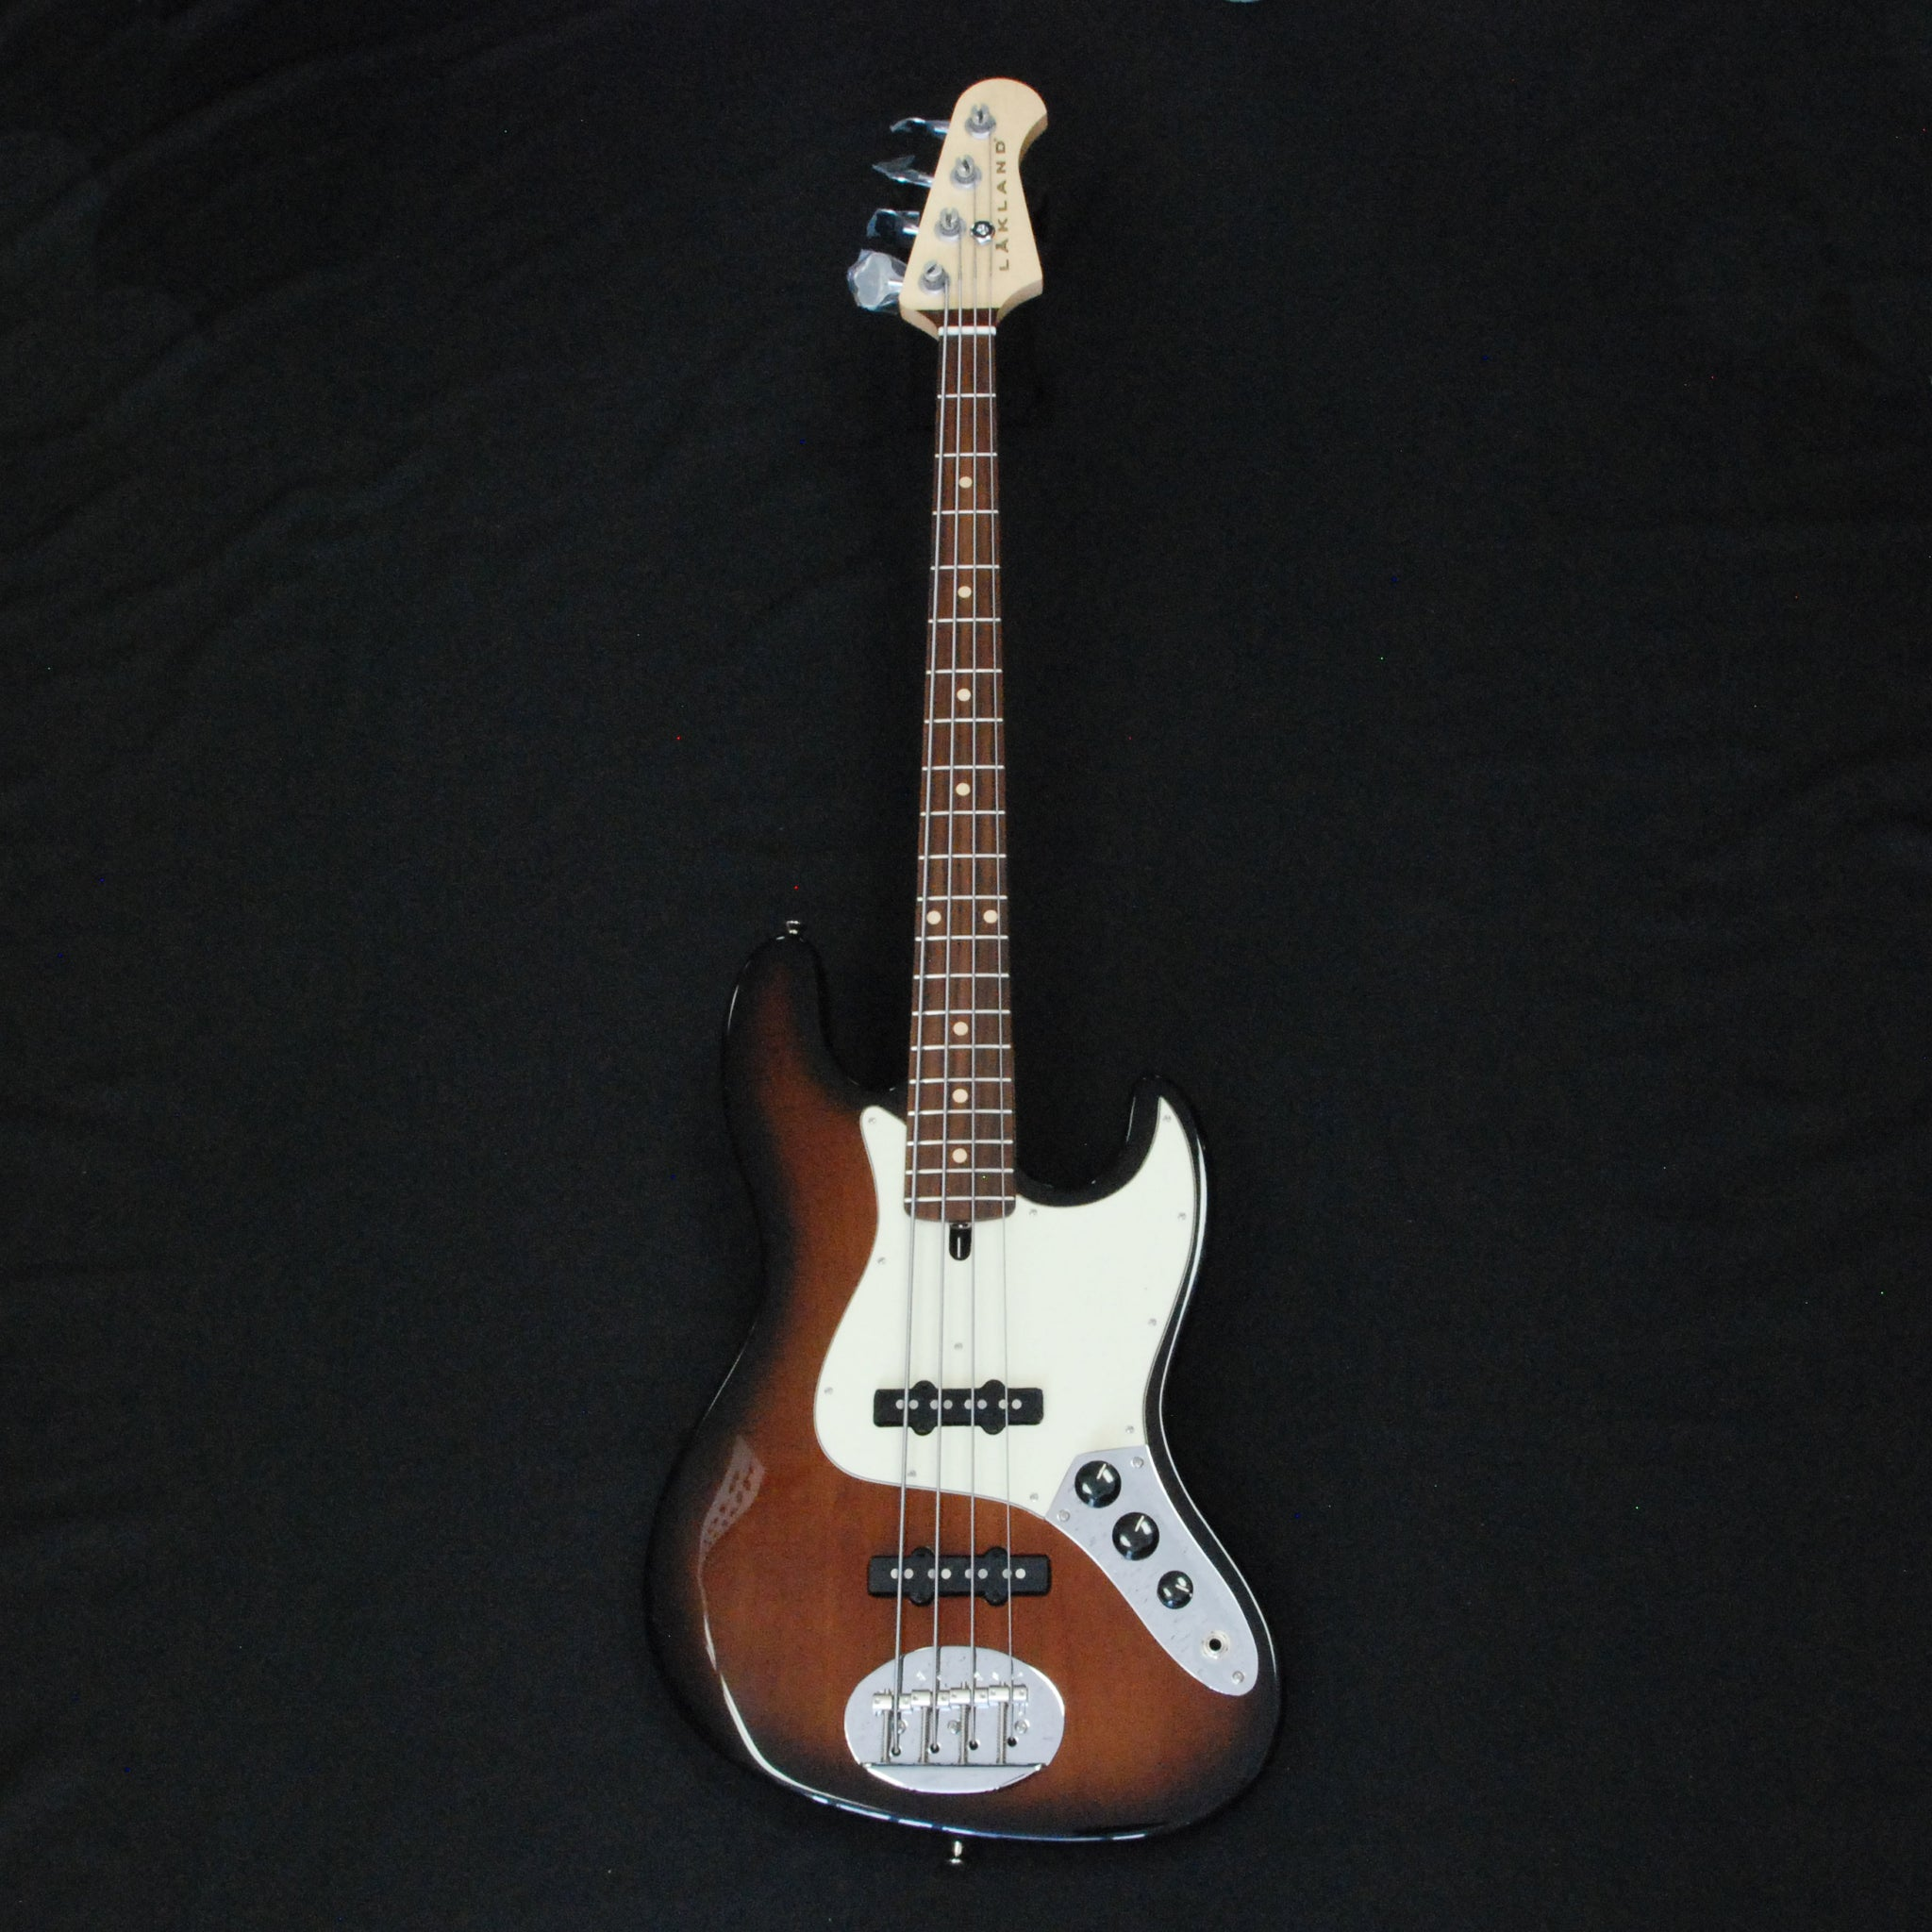 Shop online for Lakland USA Classic Series 44-60 Tobacco Sunburst 4 String Electric Jazz Bass Guitar [J40055] today. Now available for purchase from Midlothian Music of Orland Park, Illinois, USA